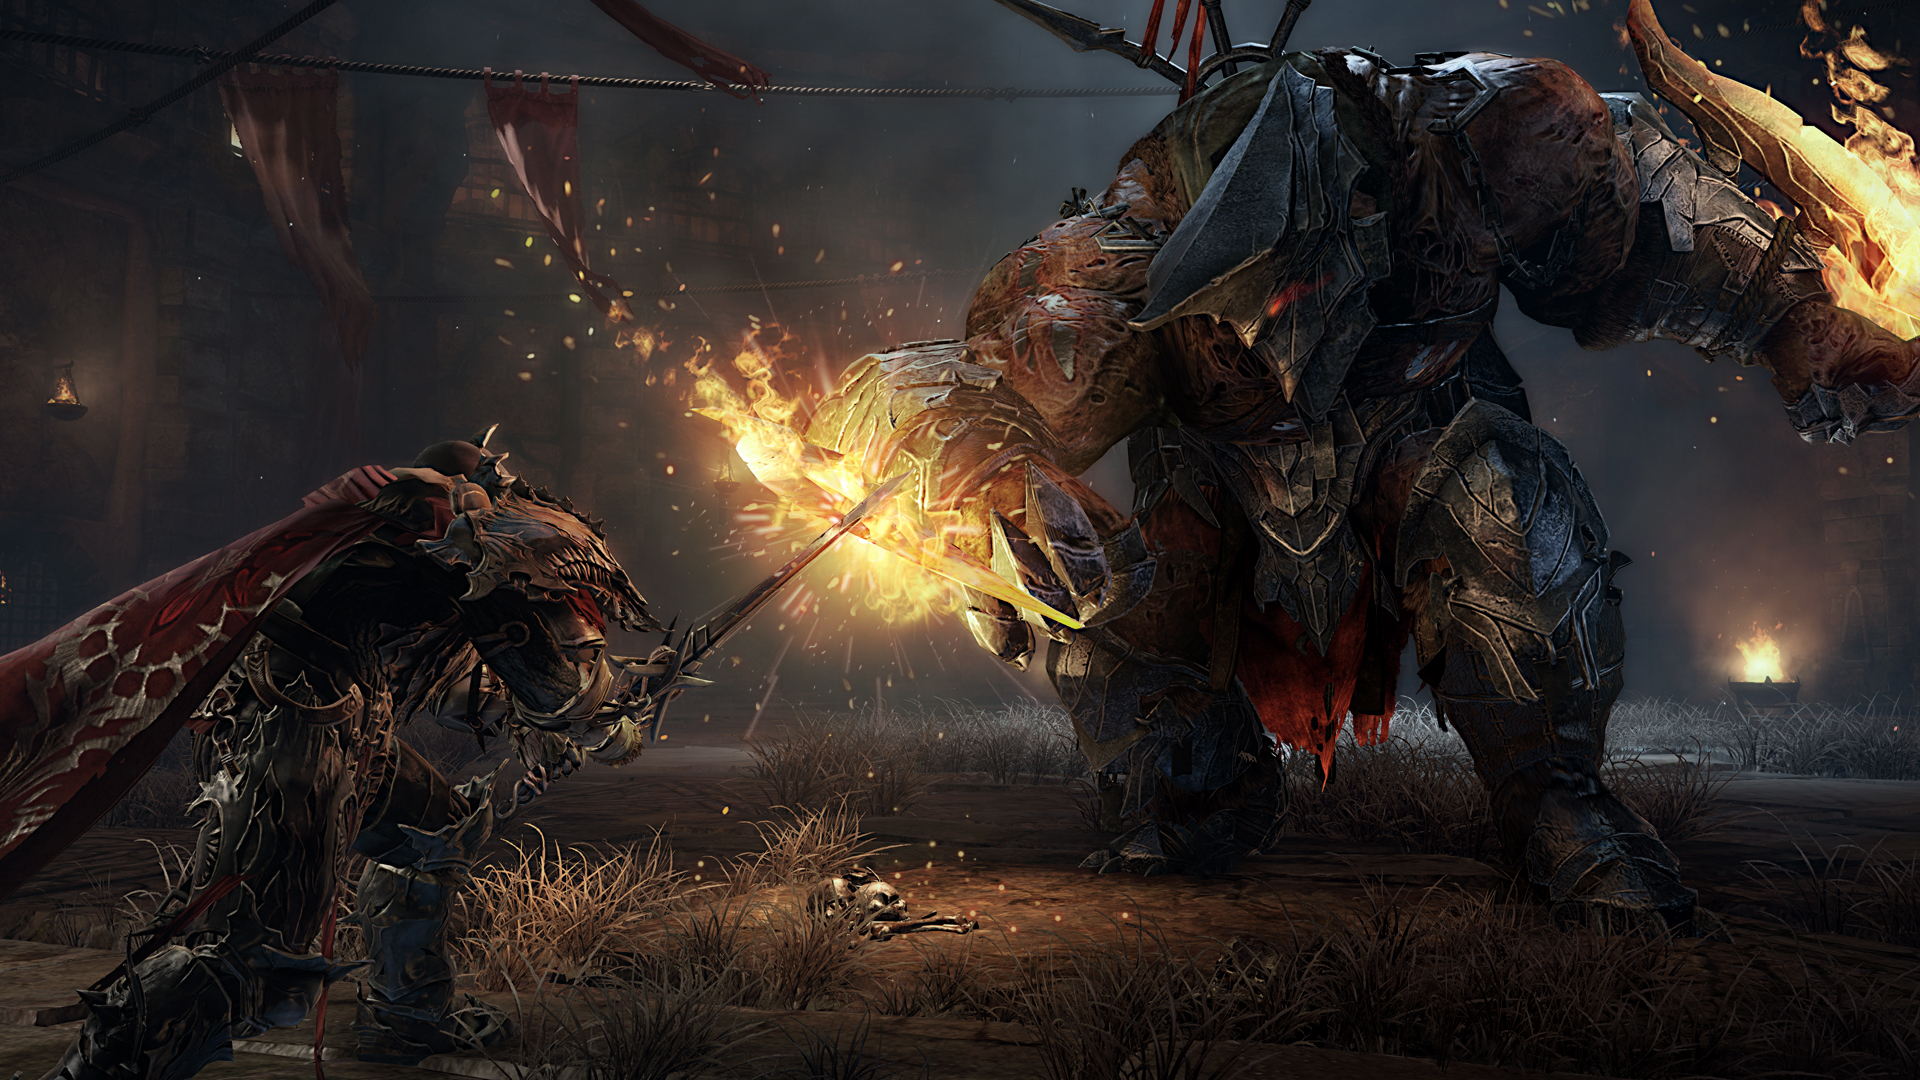 Lords Of The Fallen ESPAÑOL PC Full (CPY) + REPACK 3 DVD5 (JPW) 8